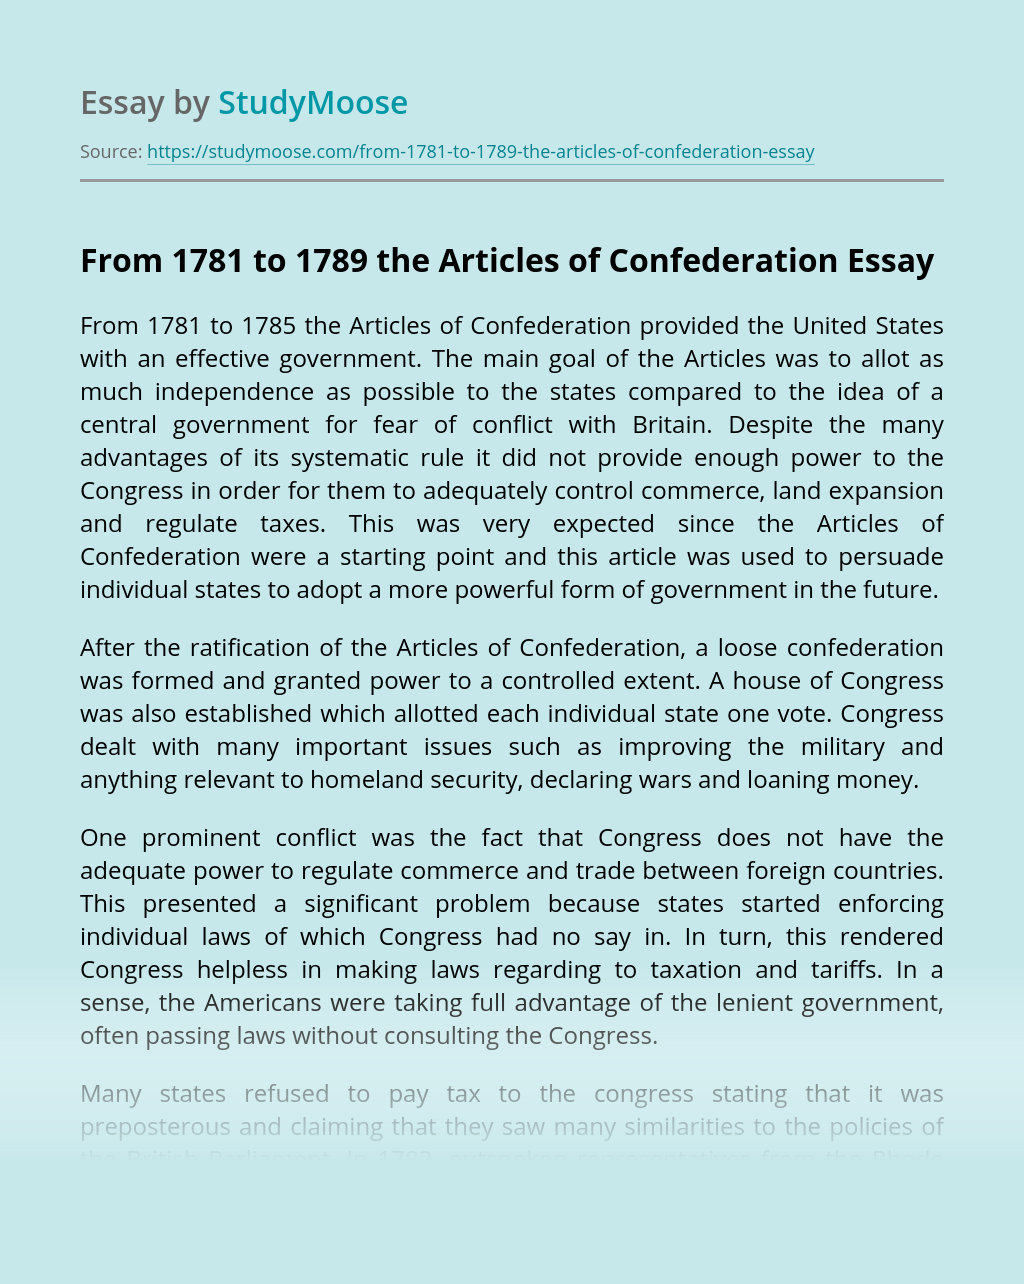 From 1781 to 1789 the Articles of Confederation